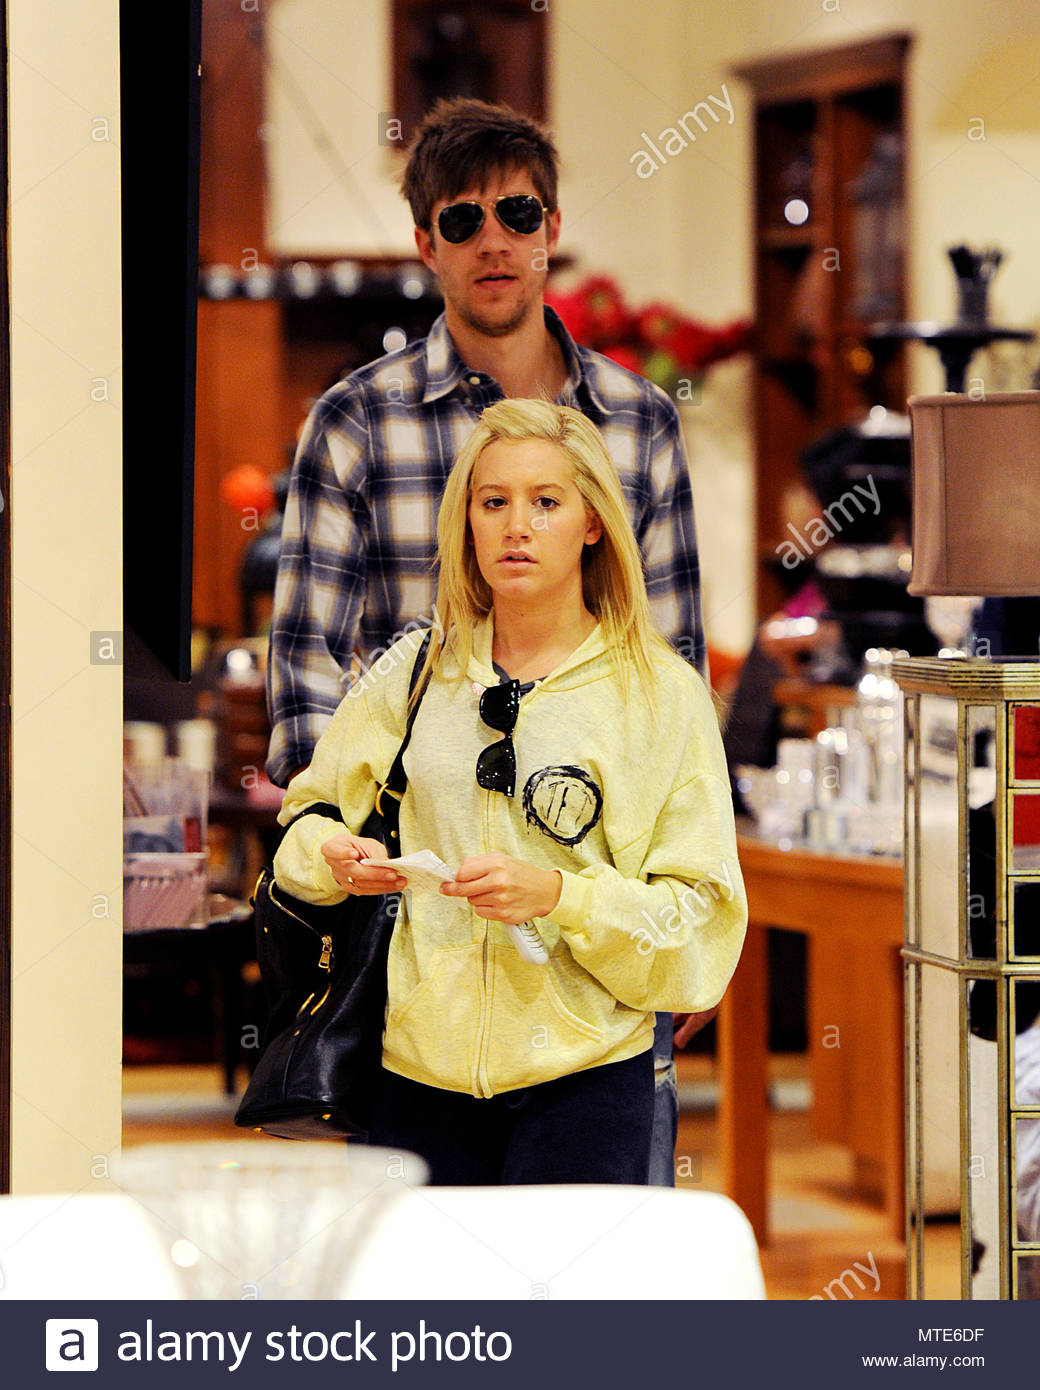 Ashley Tisdale And Her Boyfriend Were Spotted Shopping For Home Decor  Inside A Furniture Store At The Westfield Mall In Sherman Oaks, CA.